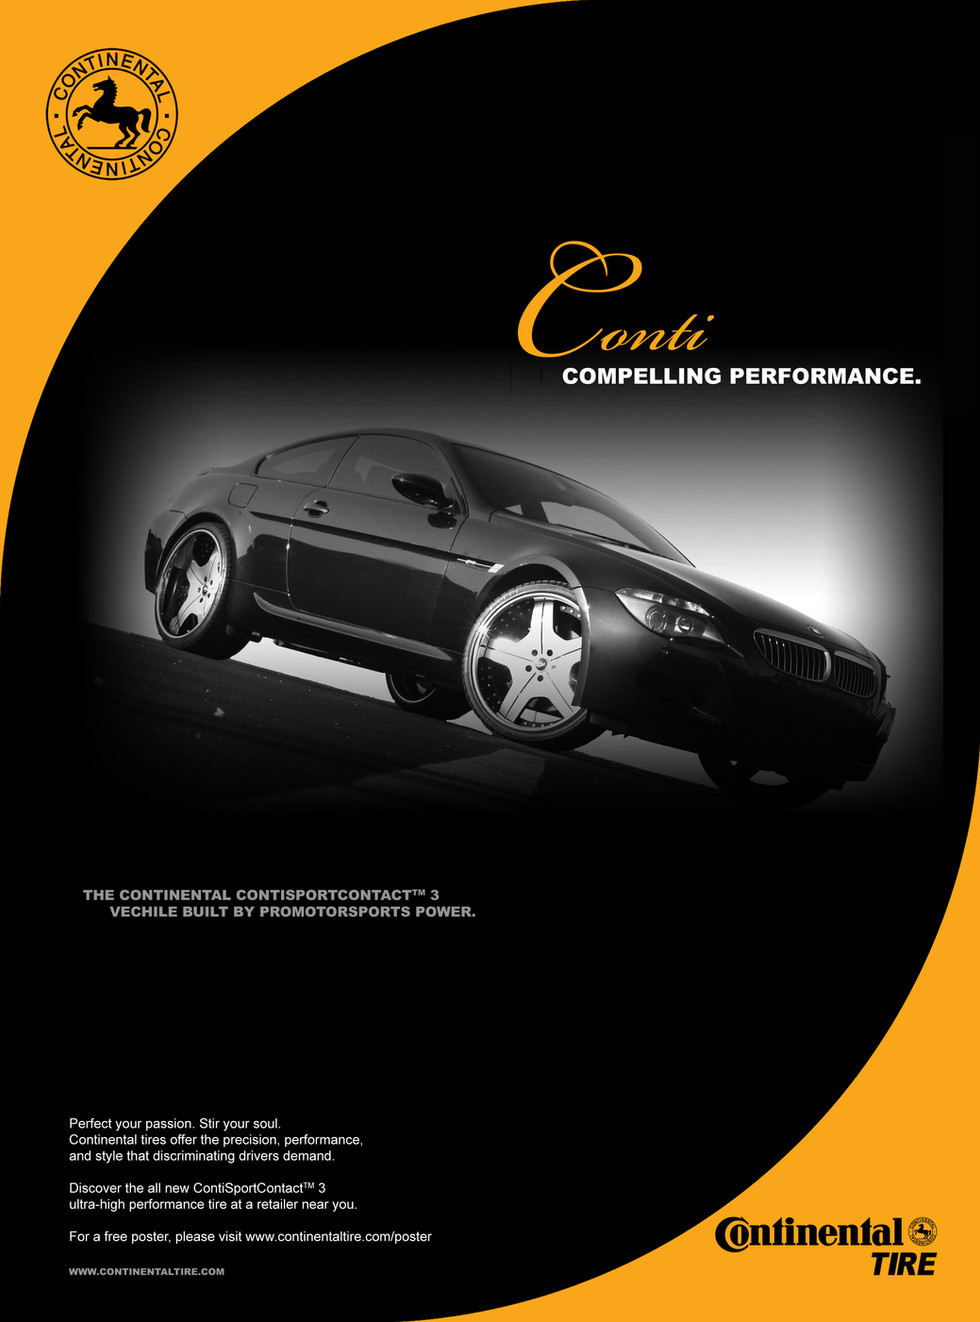 Continental_extremedesire_CSC3_EuroCar.j